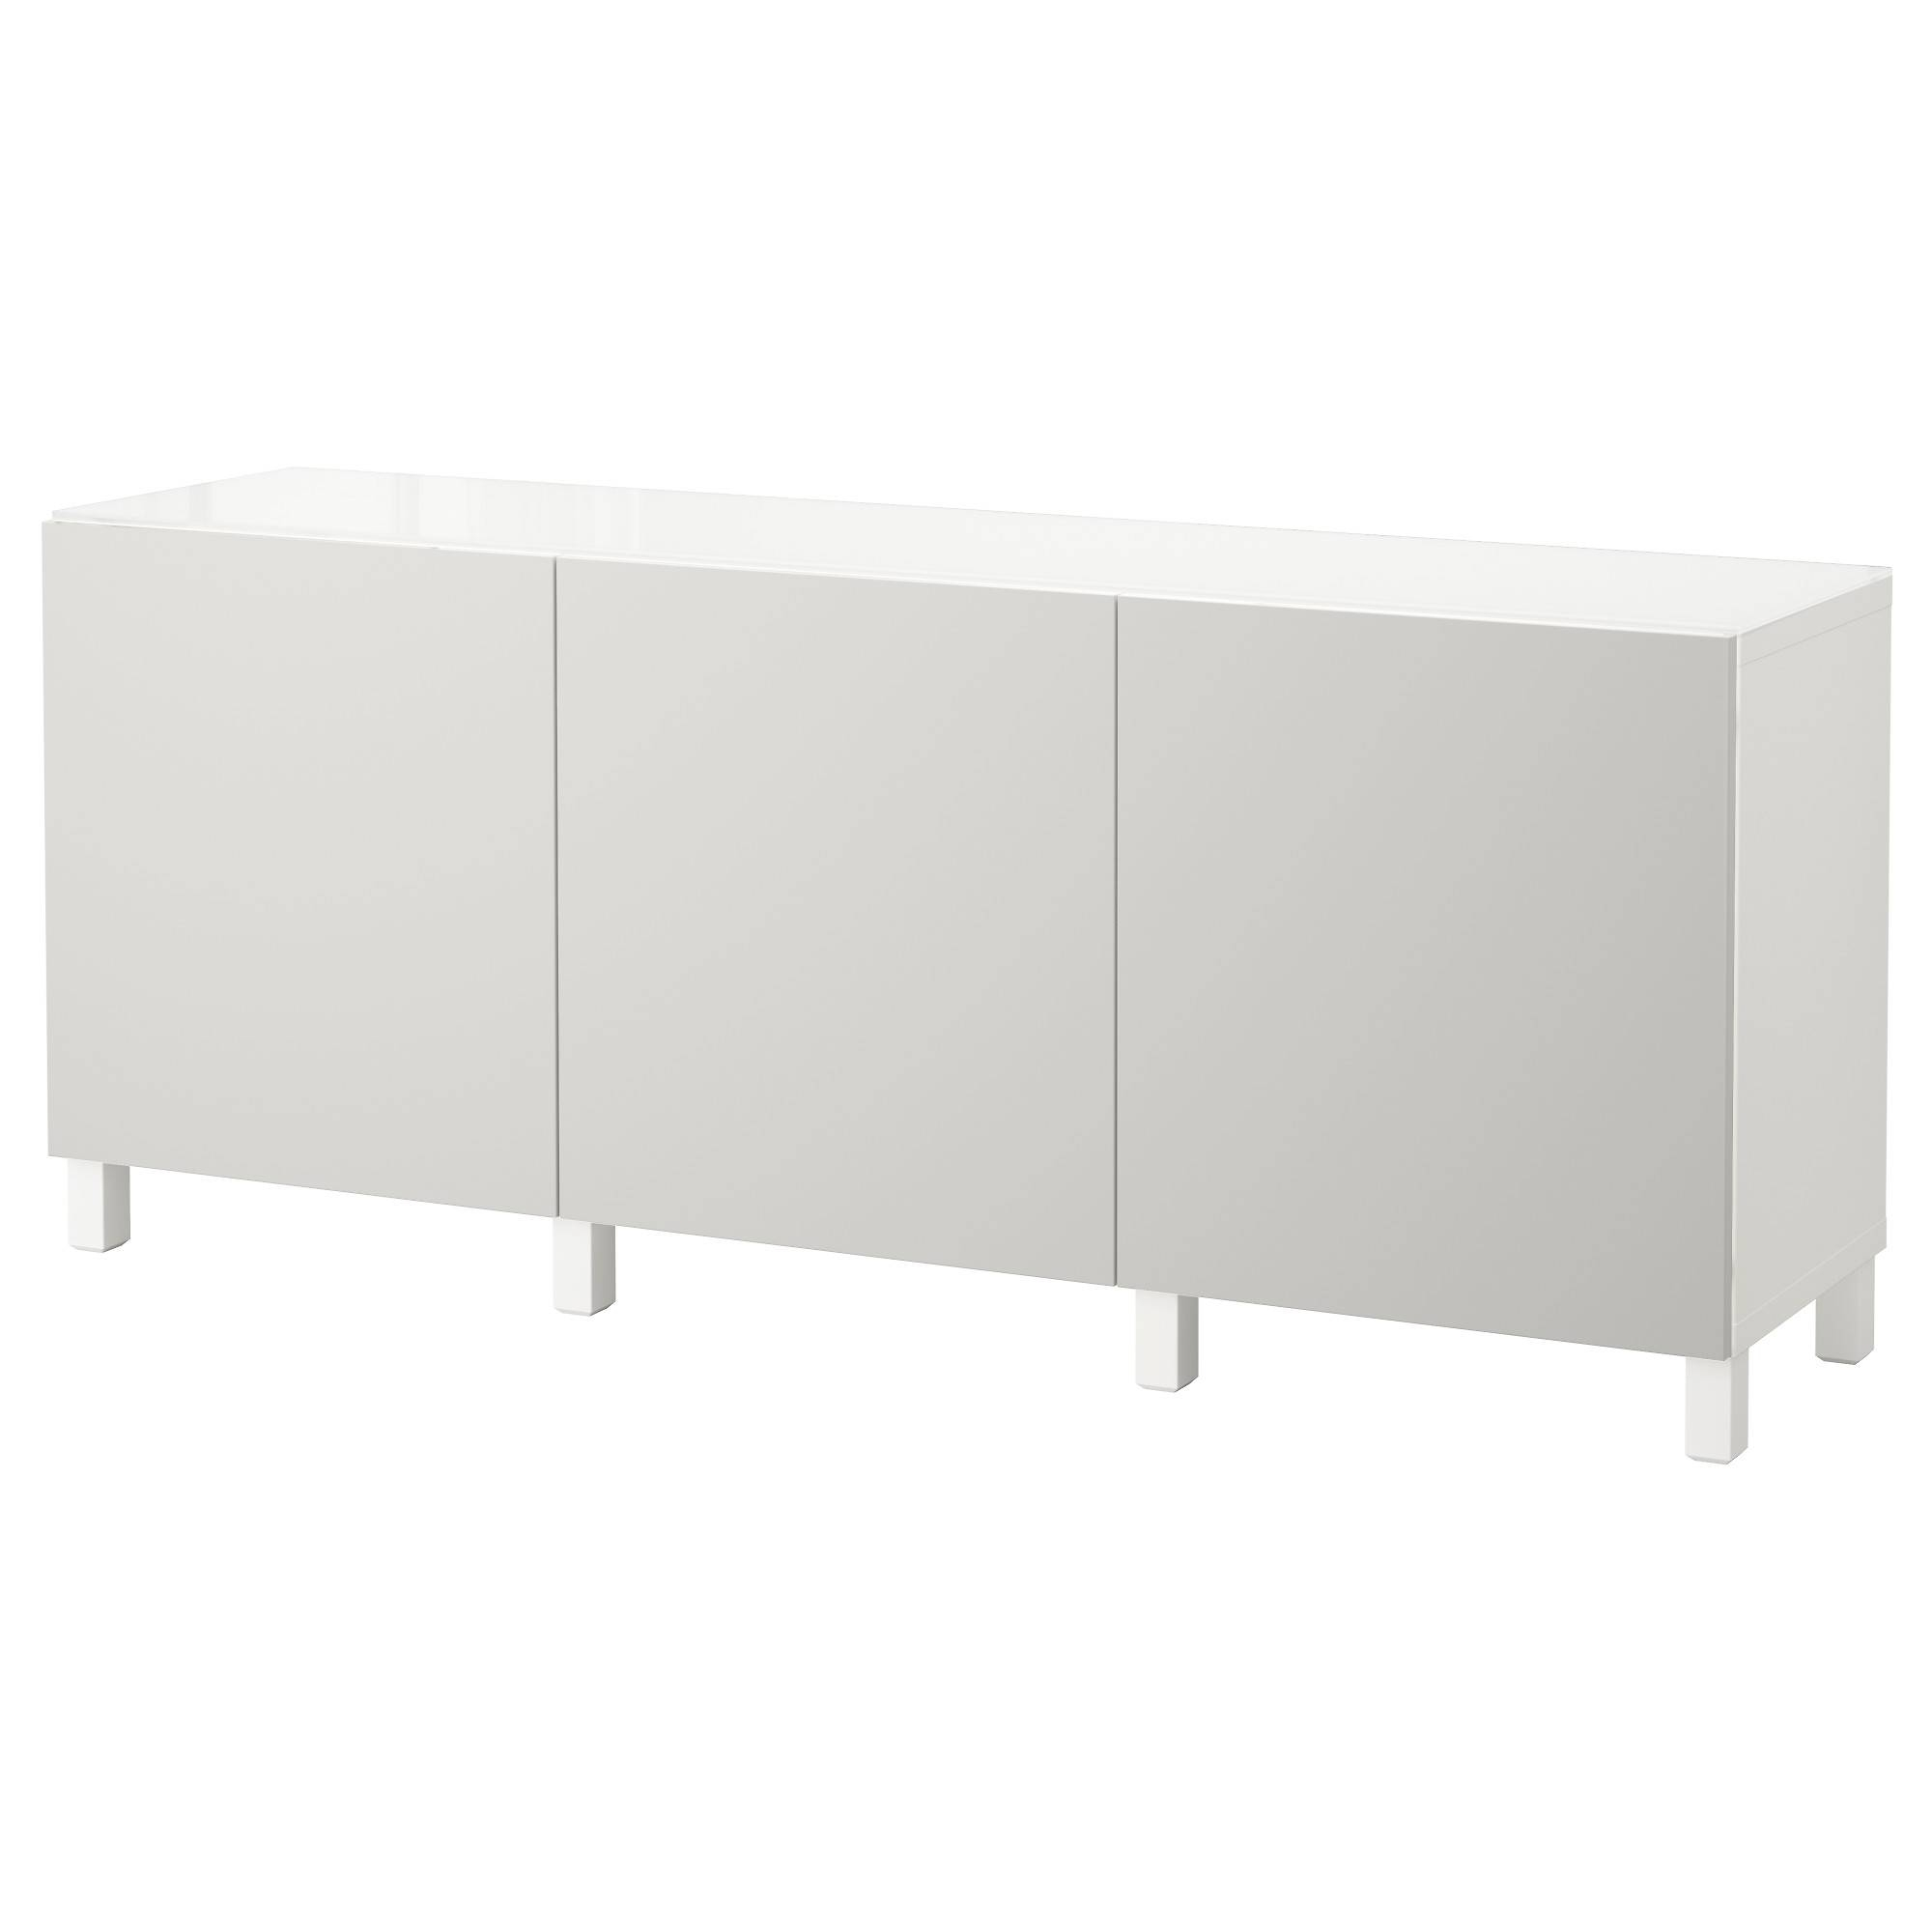 Occasional Tables & Hall Table | Ikea With Regard To Slim White Sideboards (View 6 of 15)